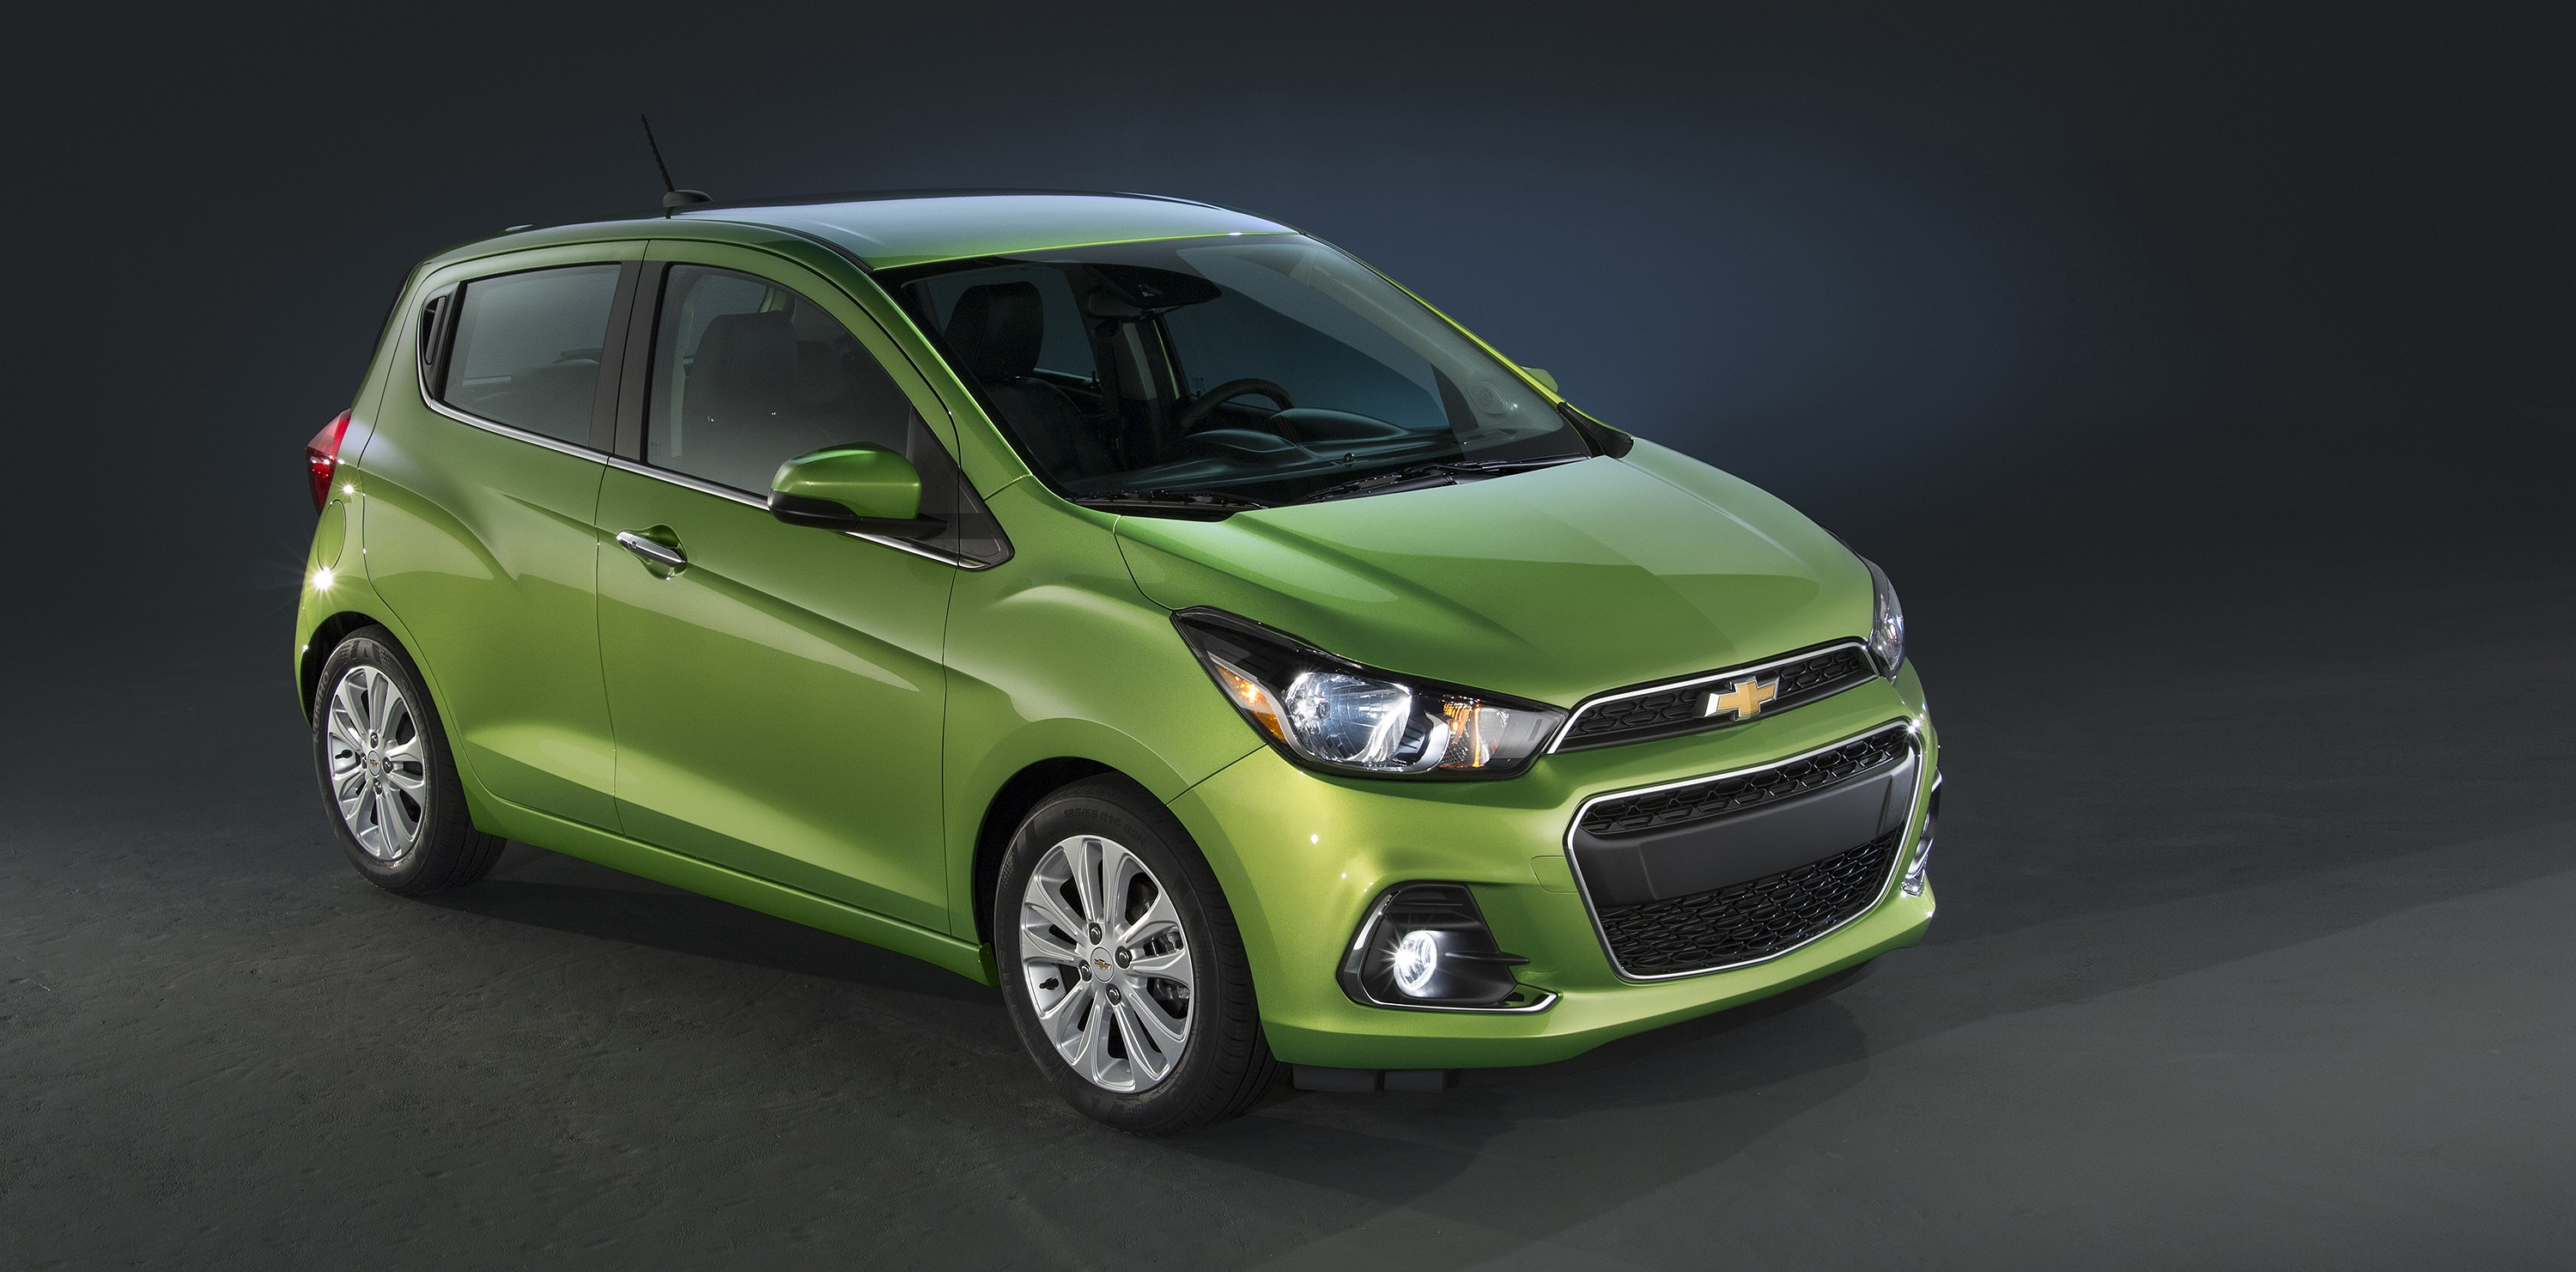 2016 Chevrolet Spark Unveiled, It Still Uses the GM Gamma ...